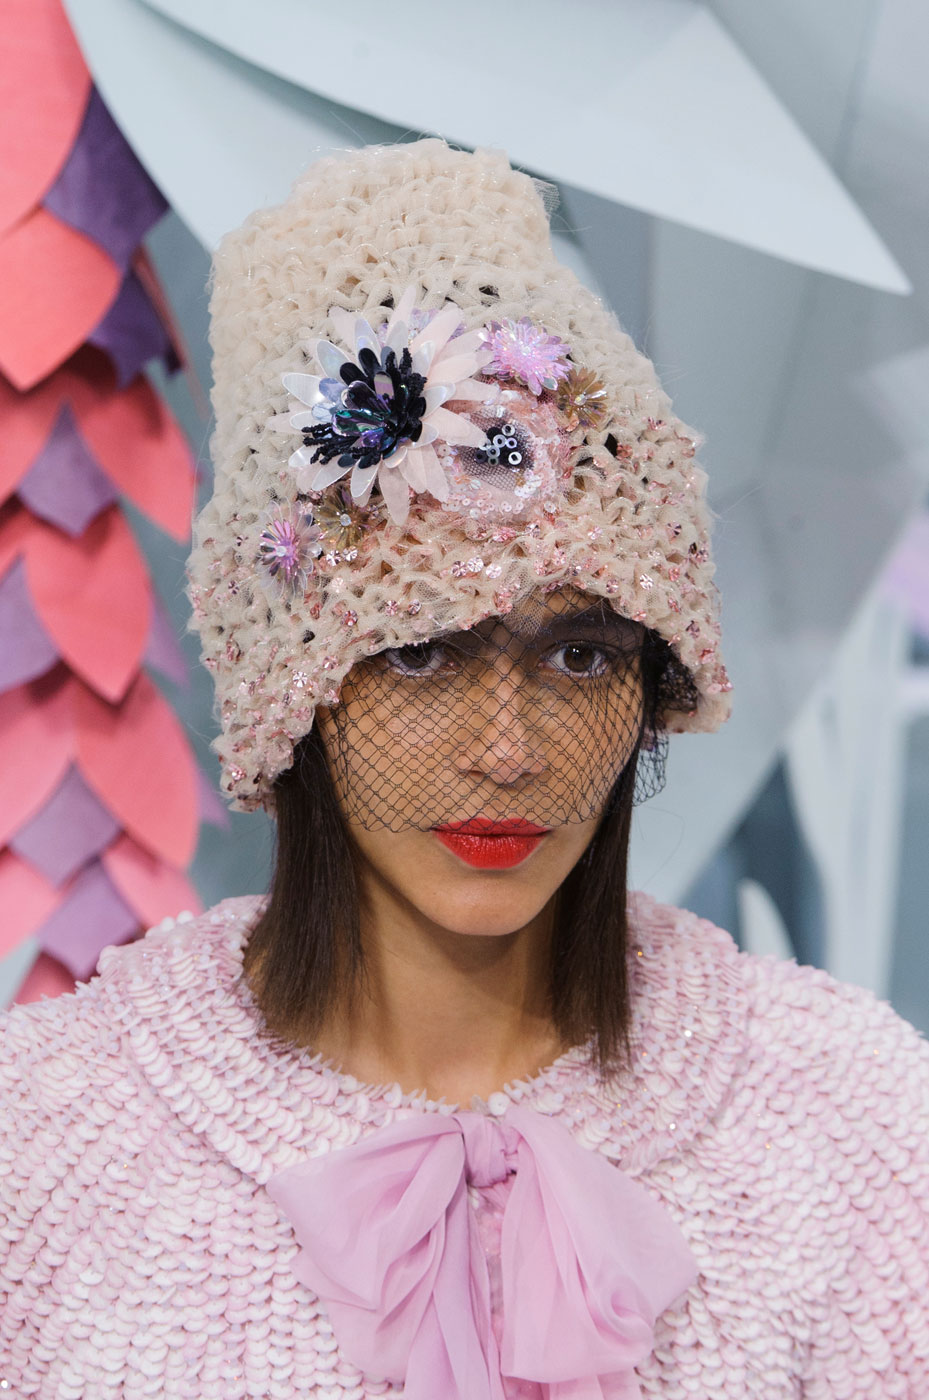 Chanel-fashion-runway-show-close-ups-haute-couture-paris-spring-summer-2015-the-impression-116